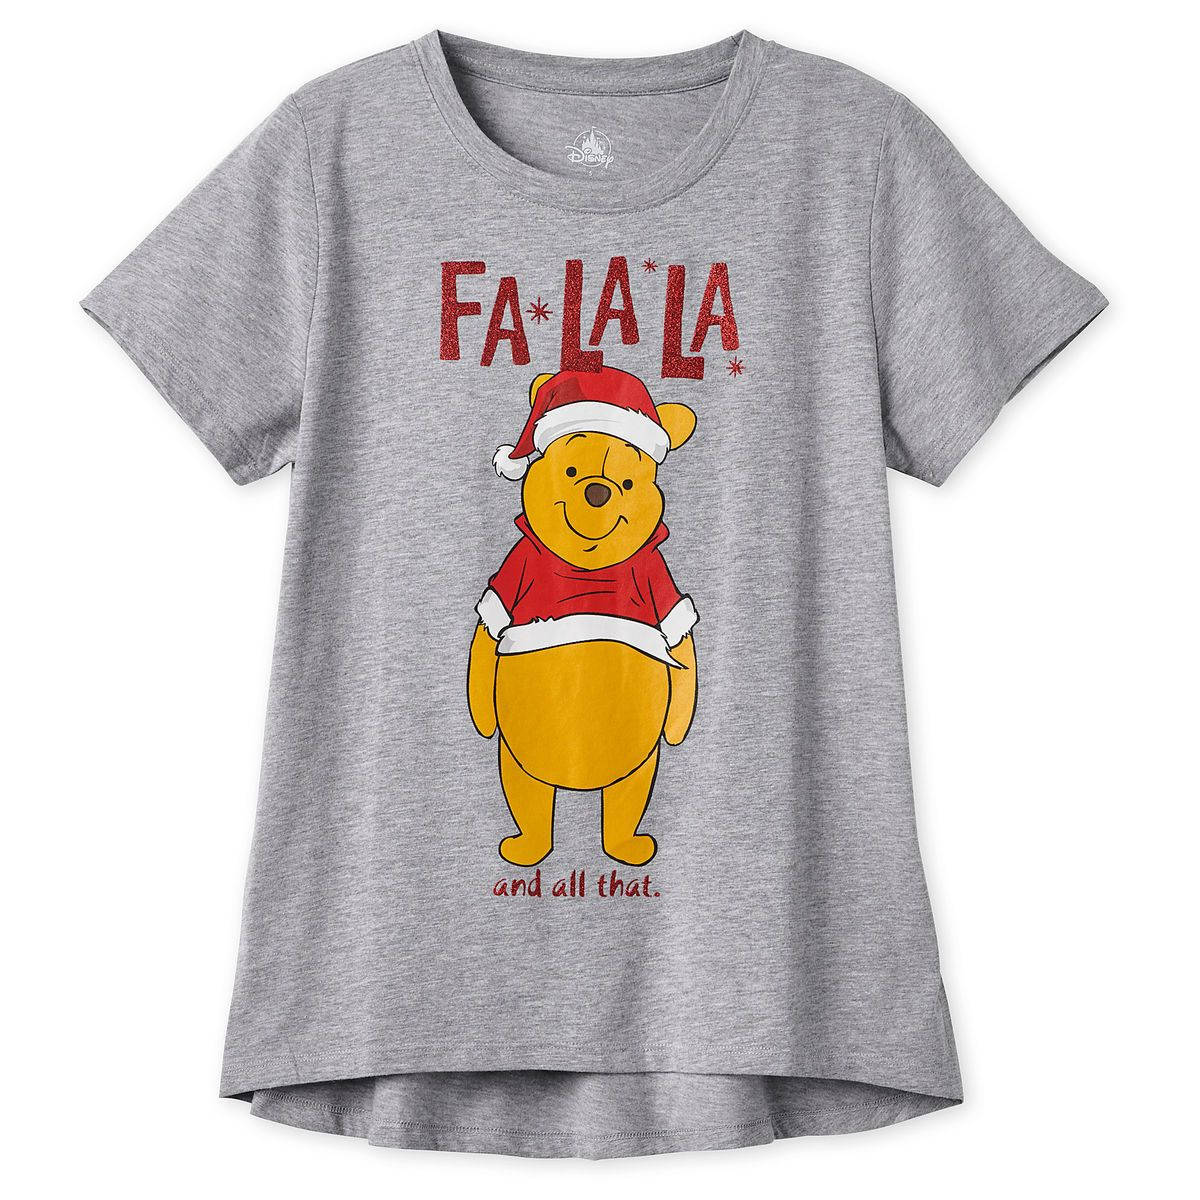 Product Image of Winnie the Pooh Holiday T-Shirt for Women   1 1c96f6226